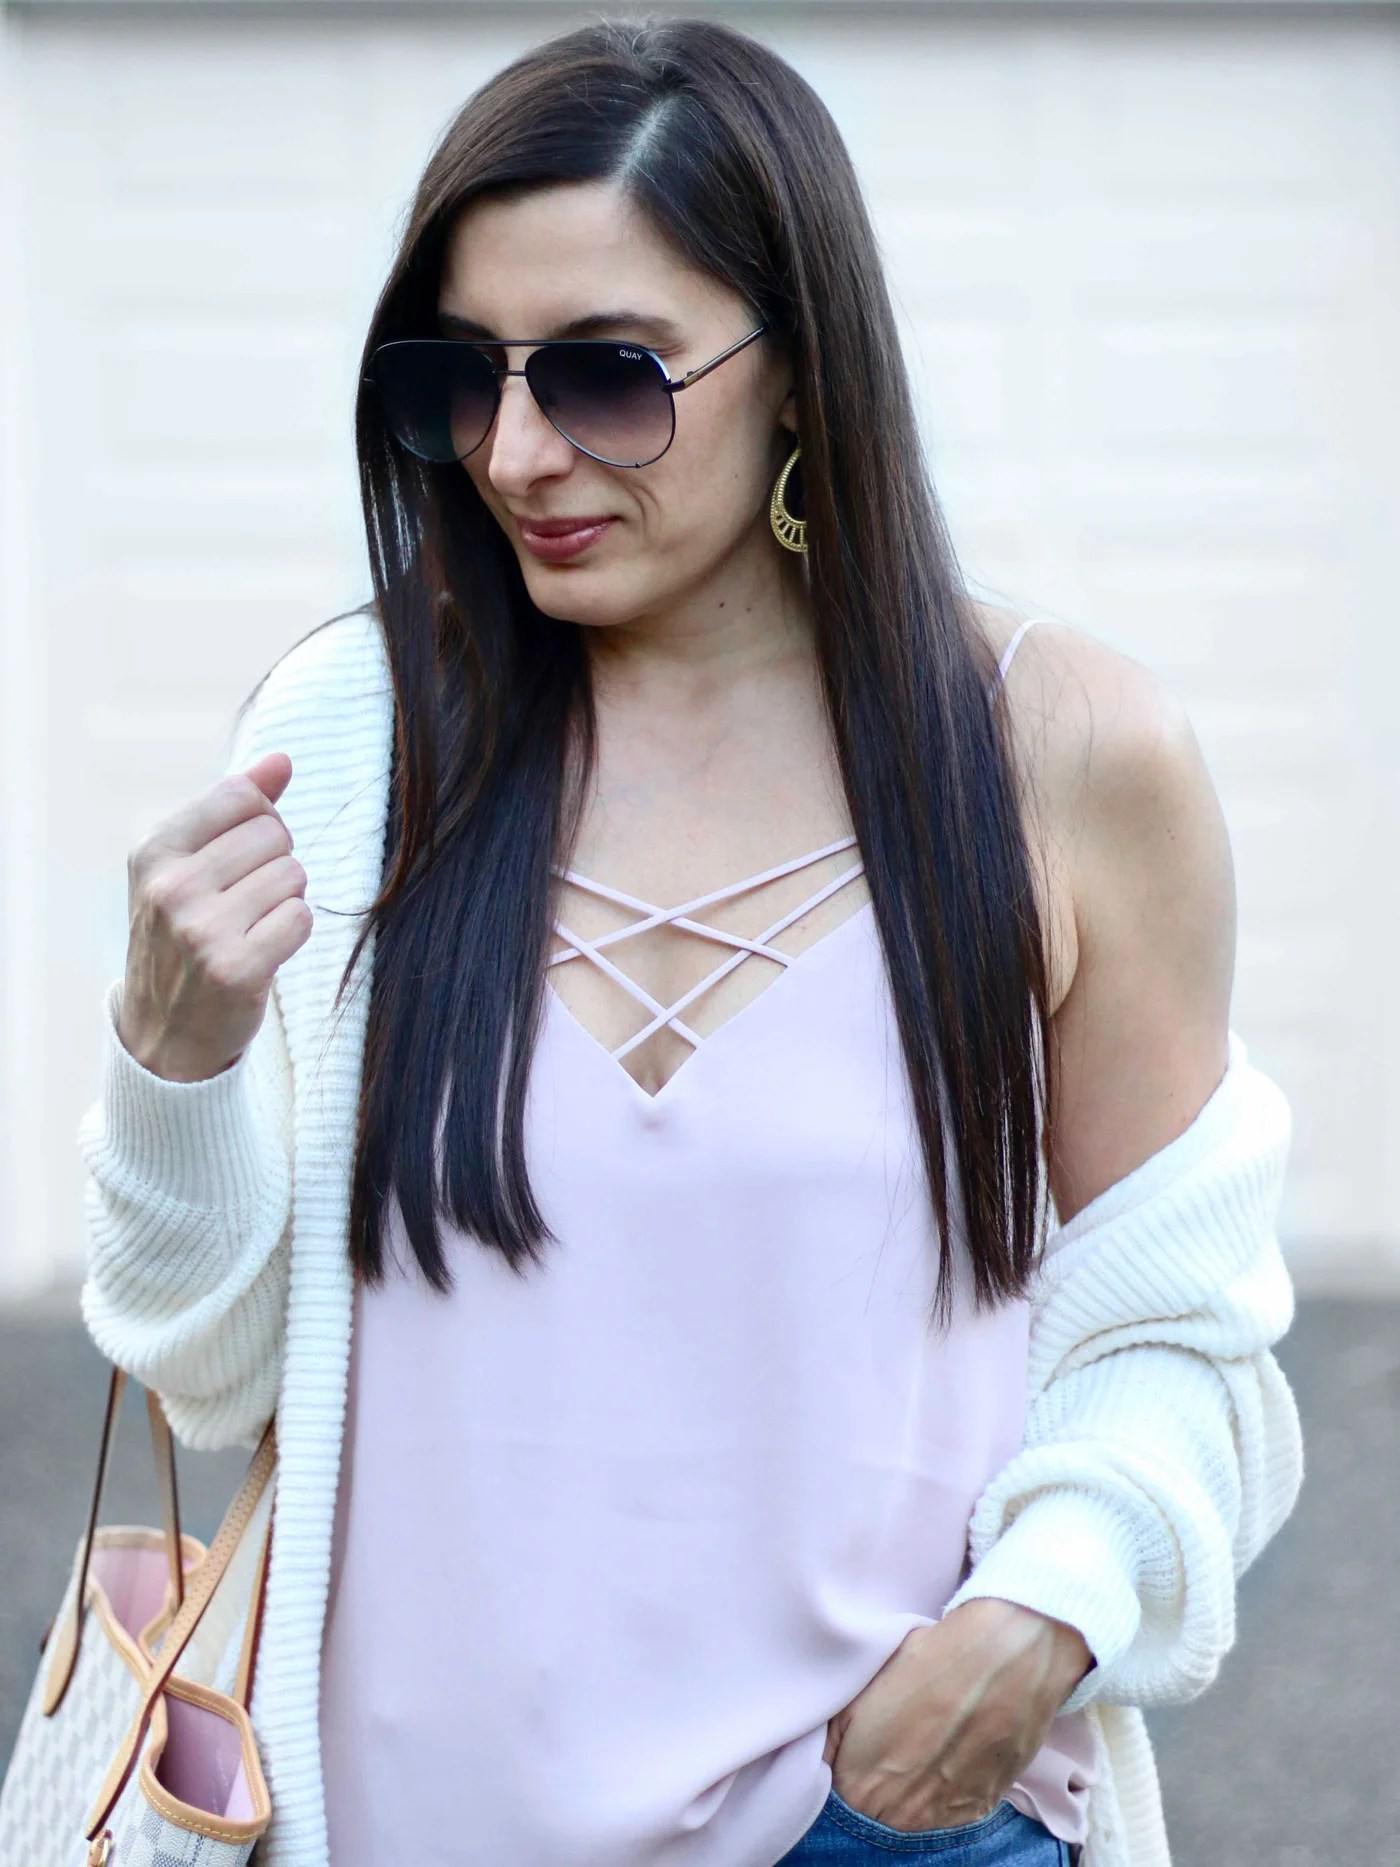 LOFT Cardigan, Express Strappy Cami, Levi's Jeans, Louis Vuitton Neverfull